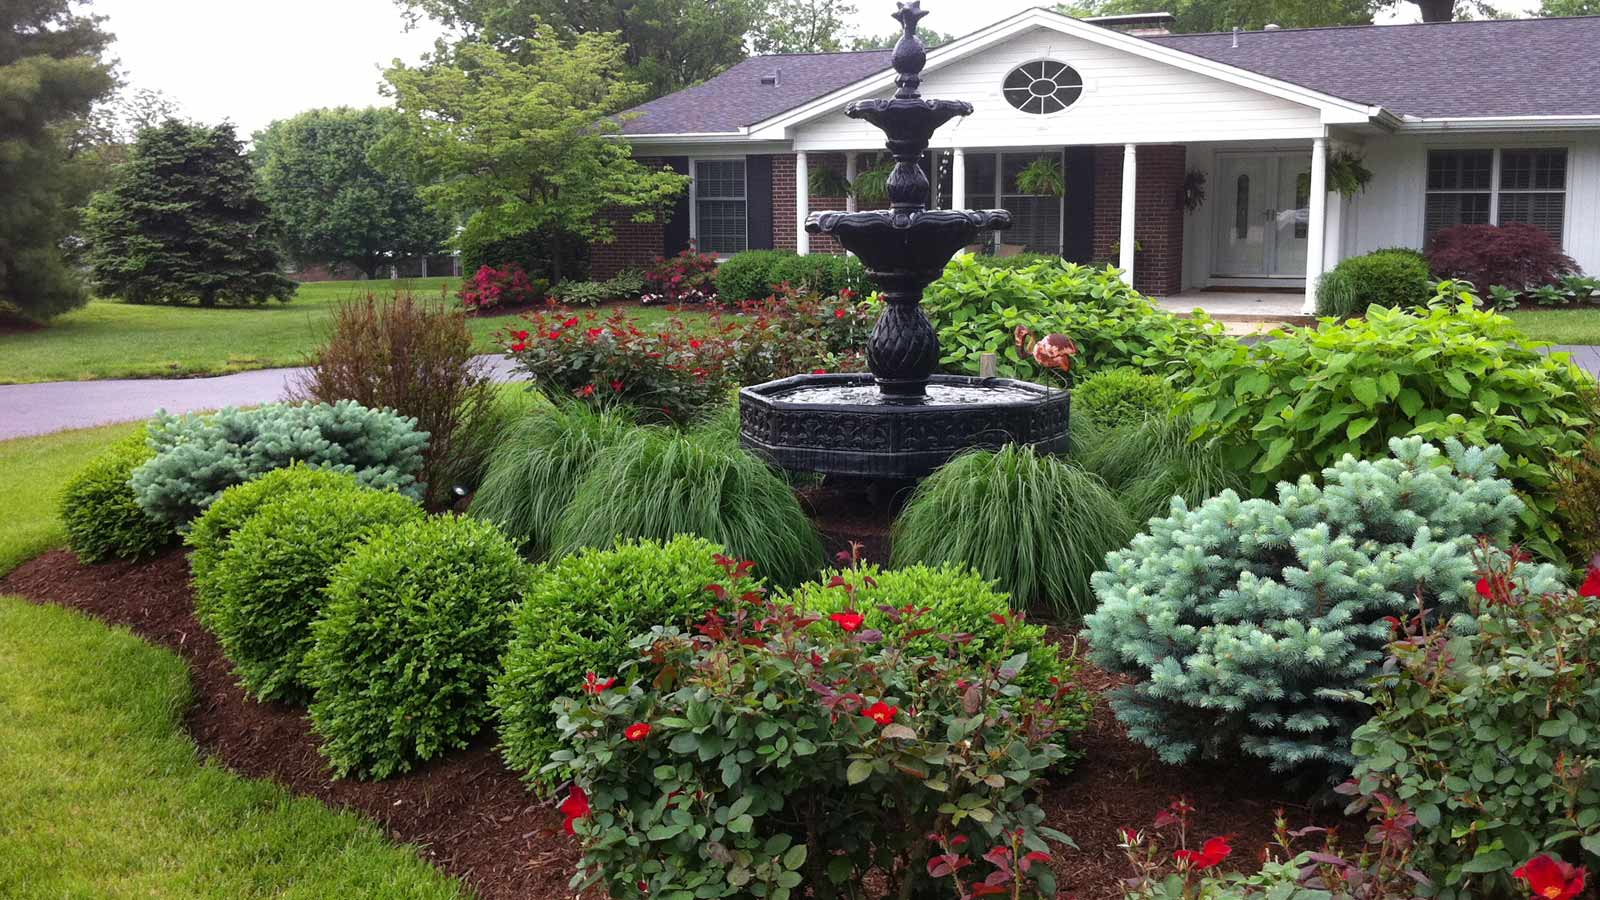 Residential landscape landscaping residential design for Best apps for garden and landscaping designs